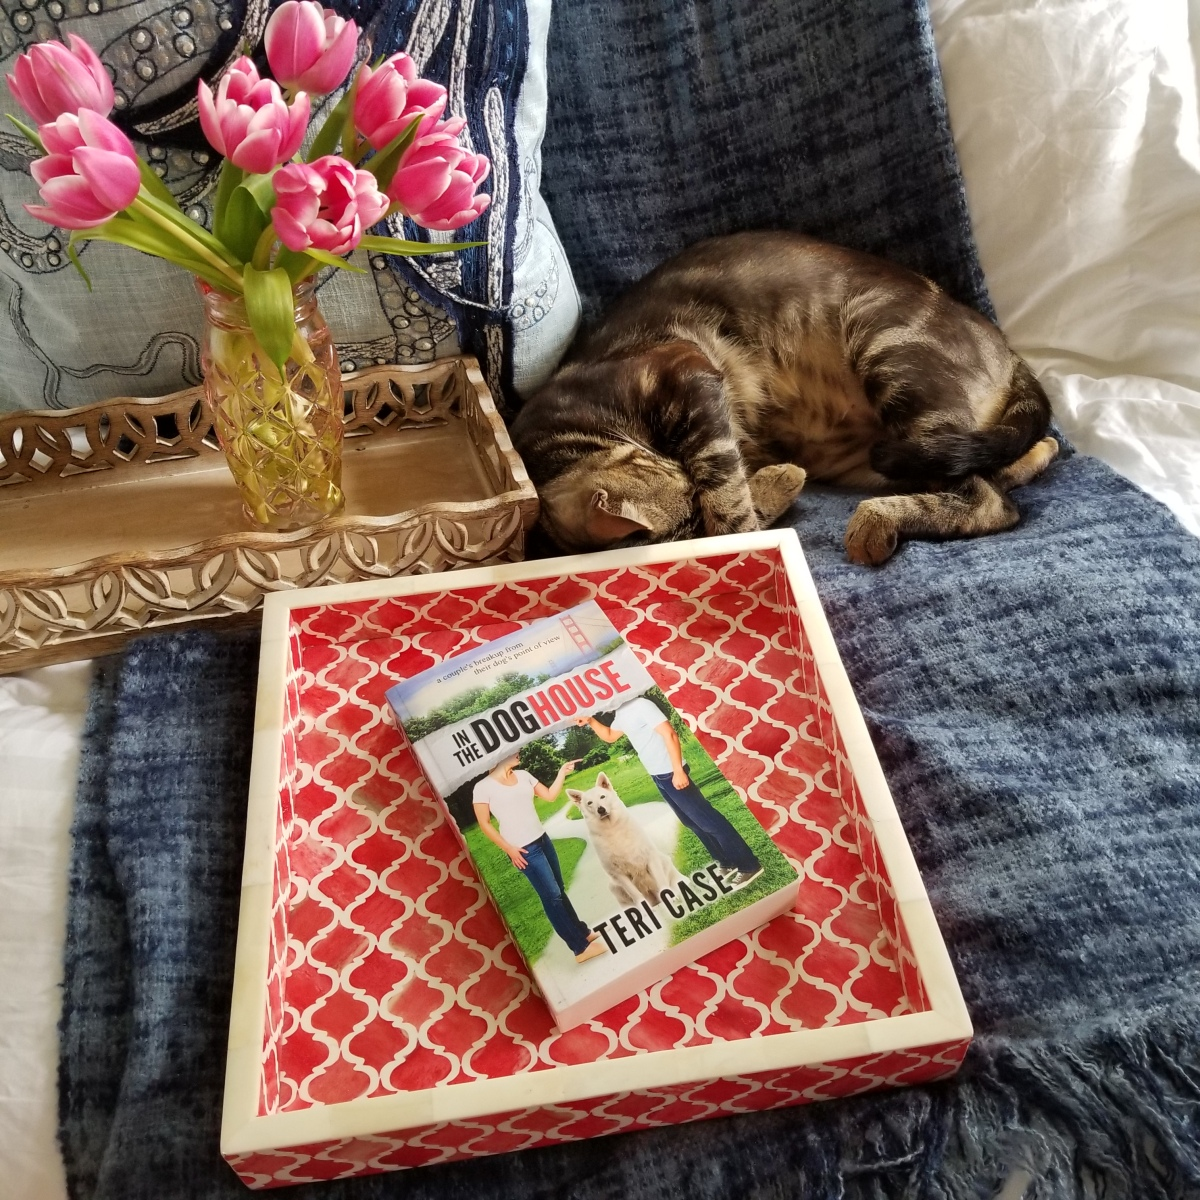 In the Dog House by Teri Case #bookreview #tarheelreader #thrinthedoghouse @tericase_author #inthedoghouse #bookgiveaway